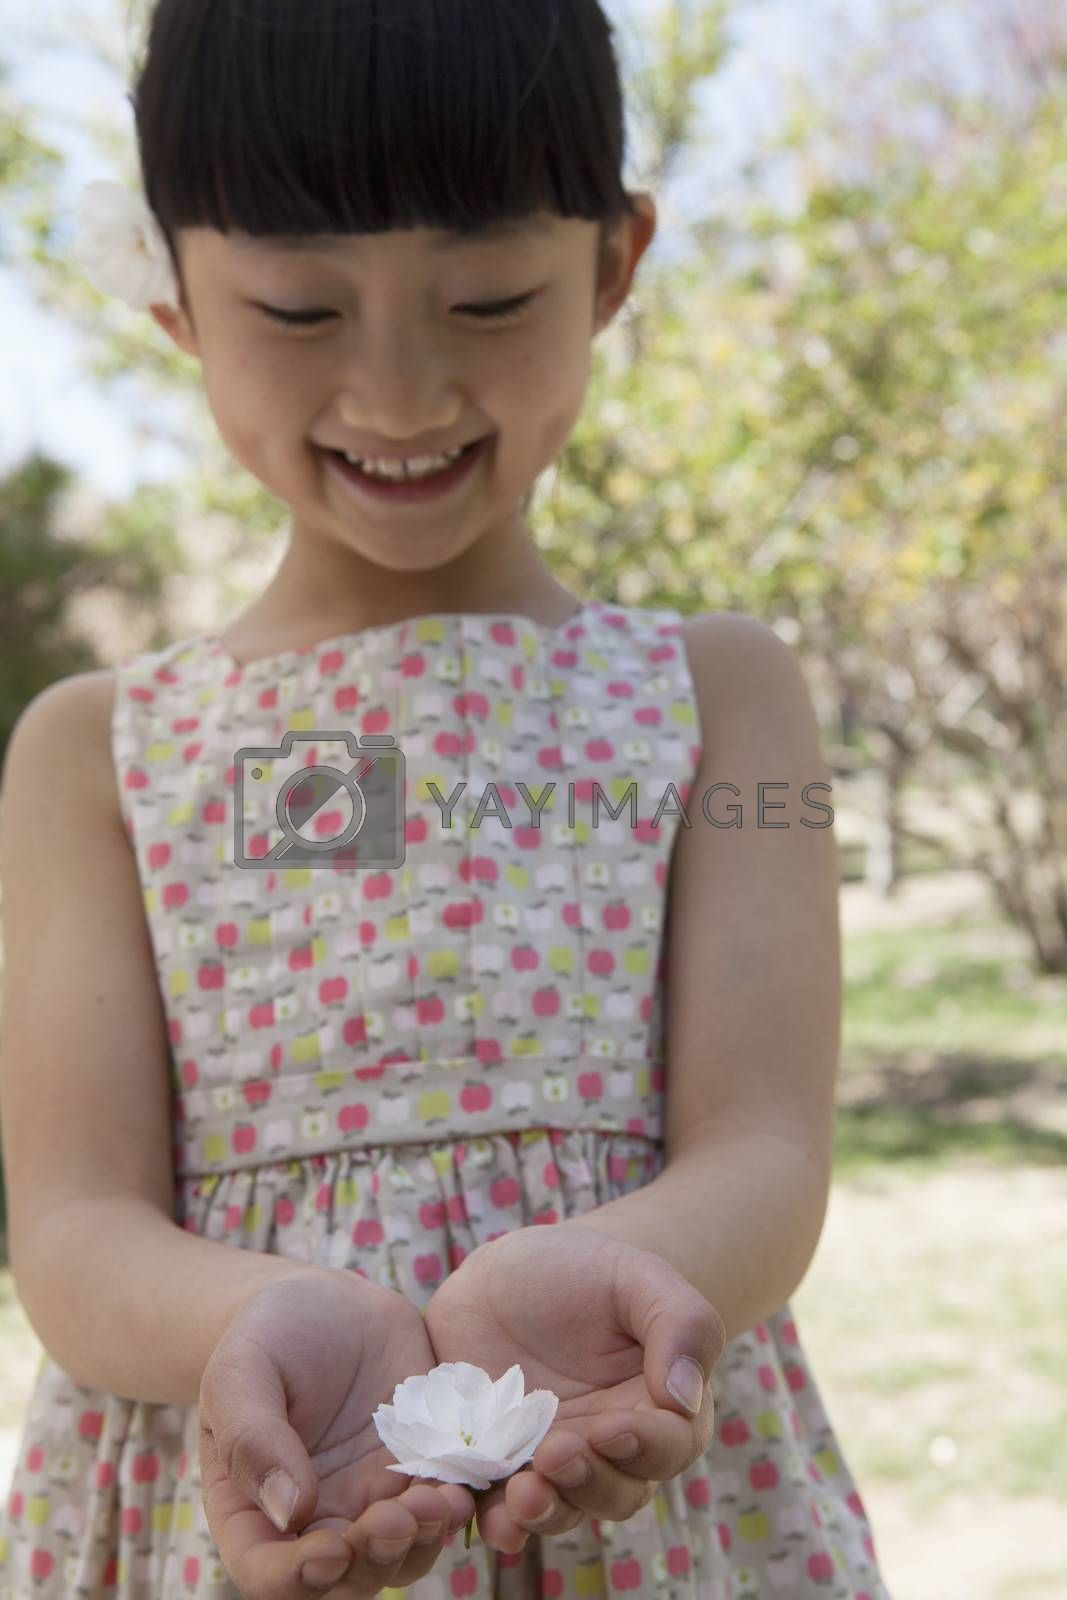 Little smiling girl looking down at a cherry blossom in her cupped hands in a park in springtime